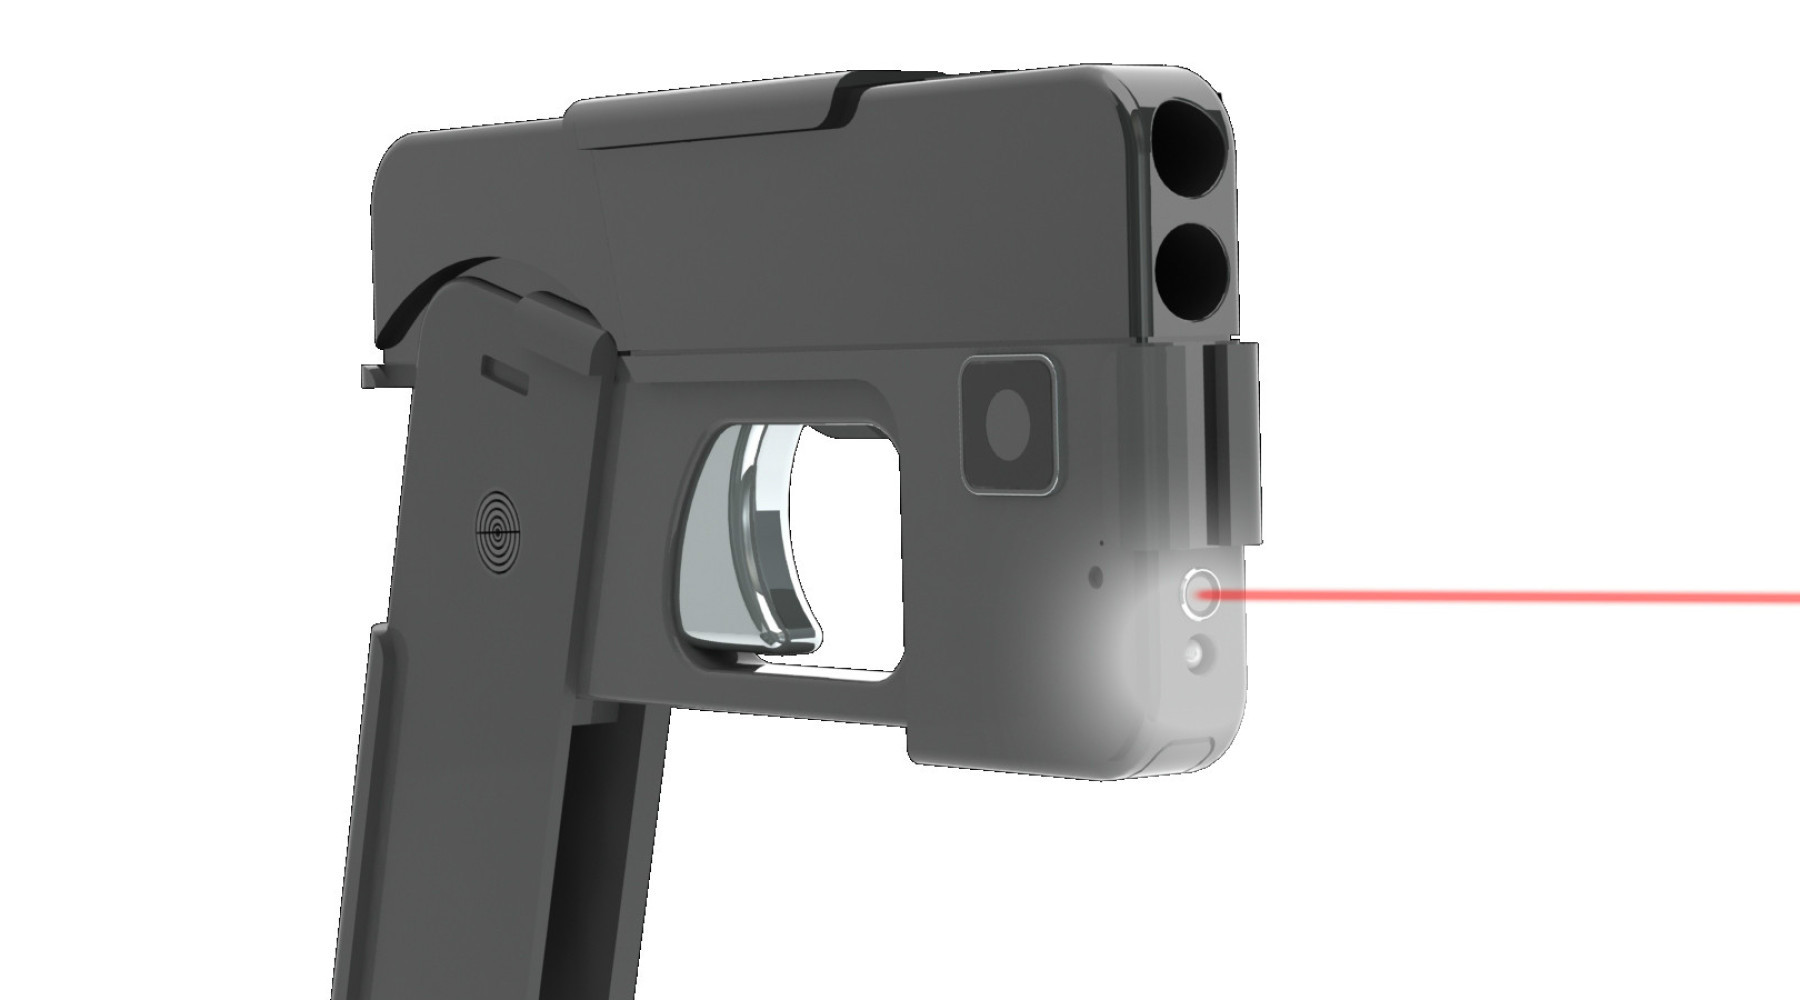 The iPhone Gun from Ideal Conceal.